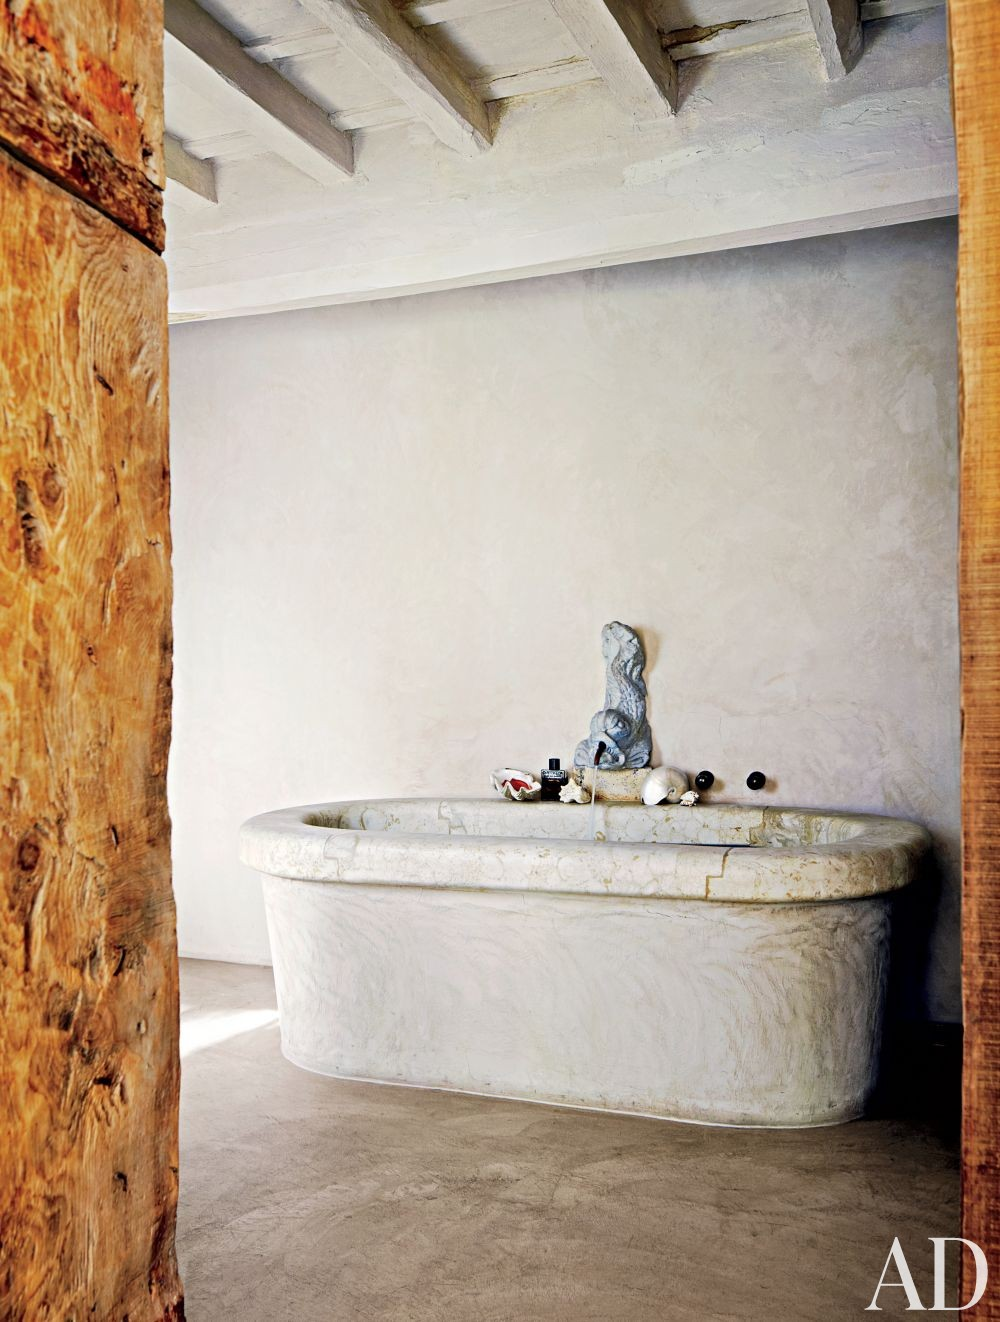 Rustic Bathroom by Axel Vervoordt and Alessio Lipari Architects and Serena Mignatti Architect in Rome, Italy